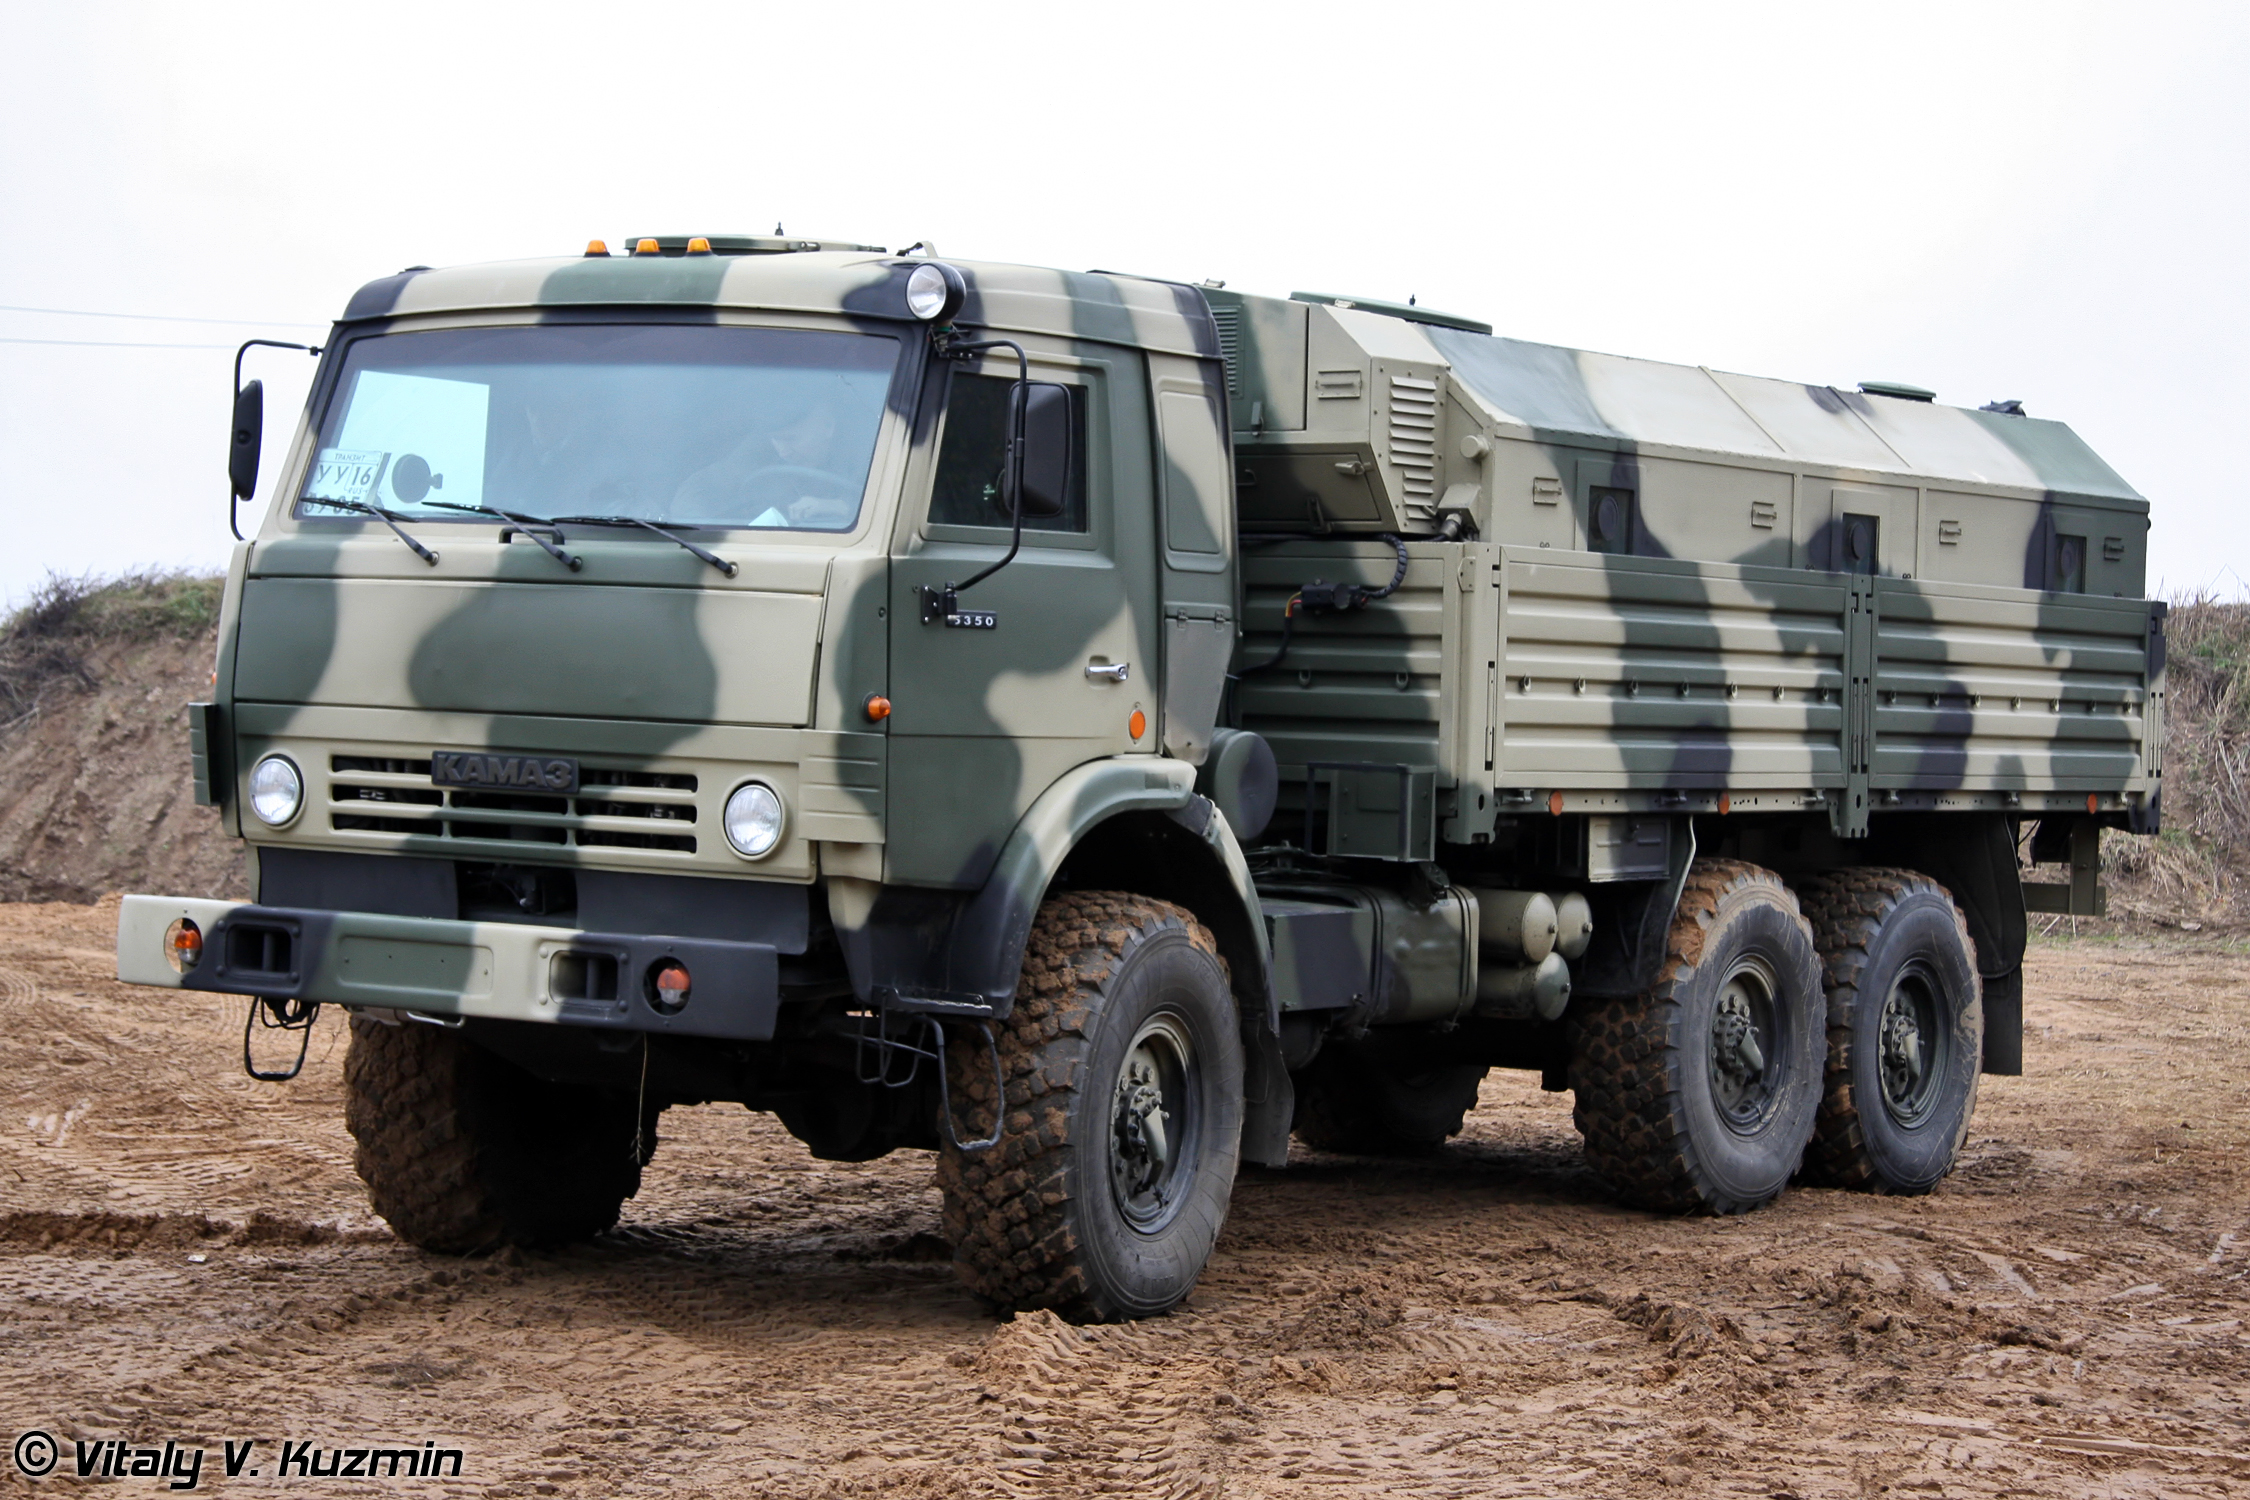 A Russian-made Kamaz 5350 medium truck. Note the cosmetic similarities to a civilian medium truck. Military trucks generally have superior off-road mobility to civilian trucks, hence the knobby mud tires.